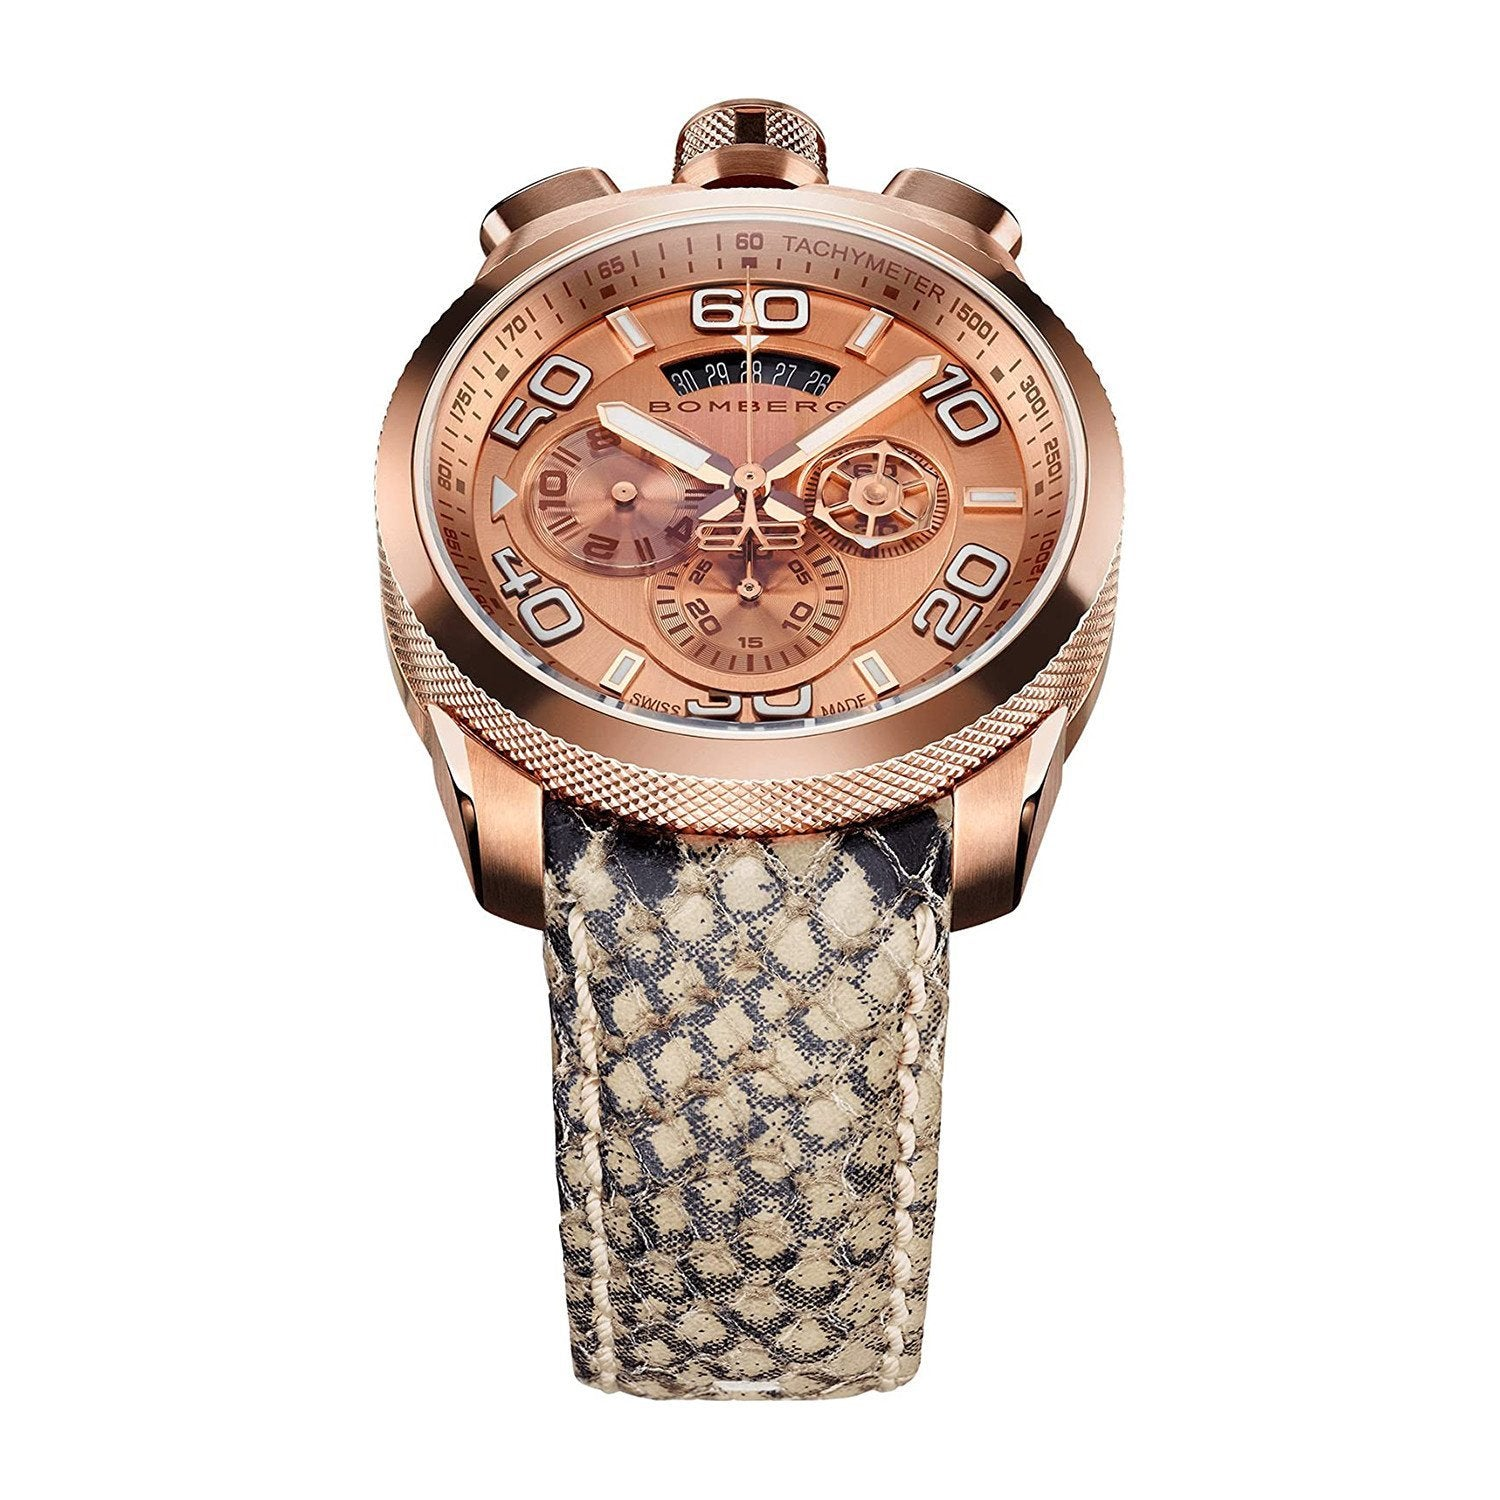 Bomberg BOLT-68 Chronograph Snakeskin - Watches & Crystals